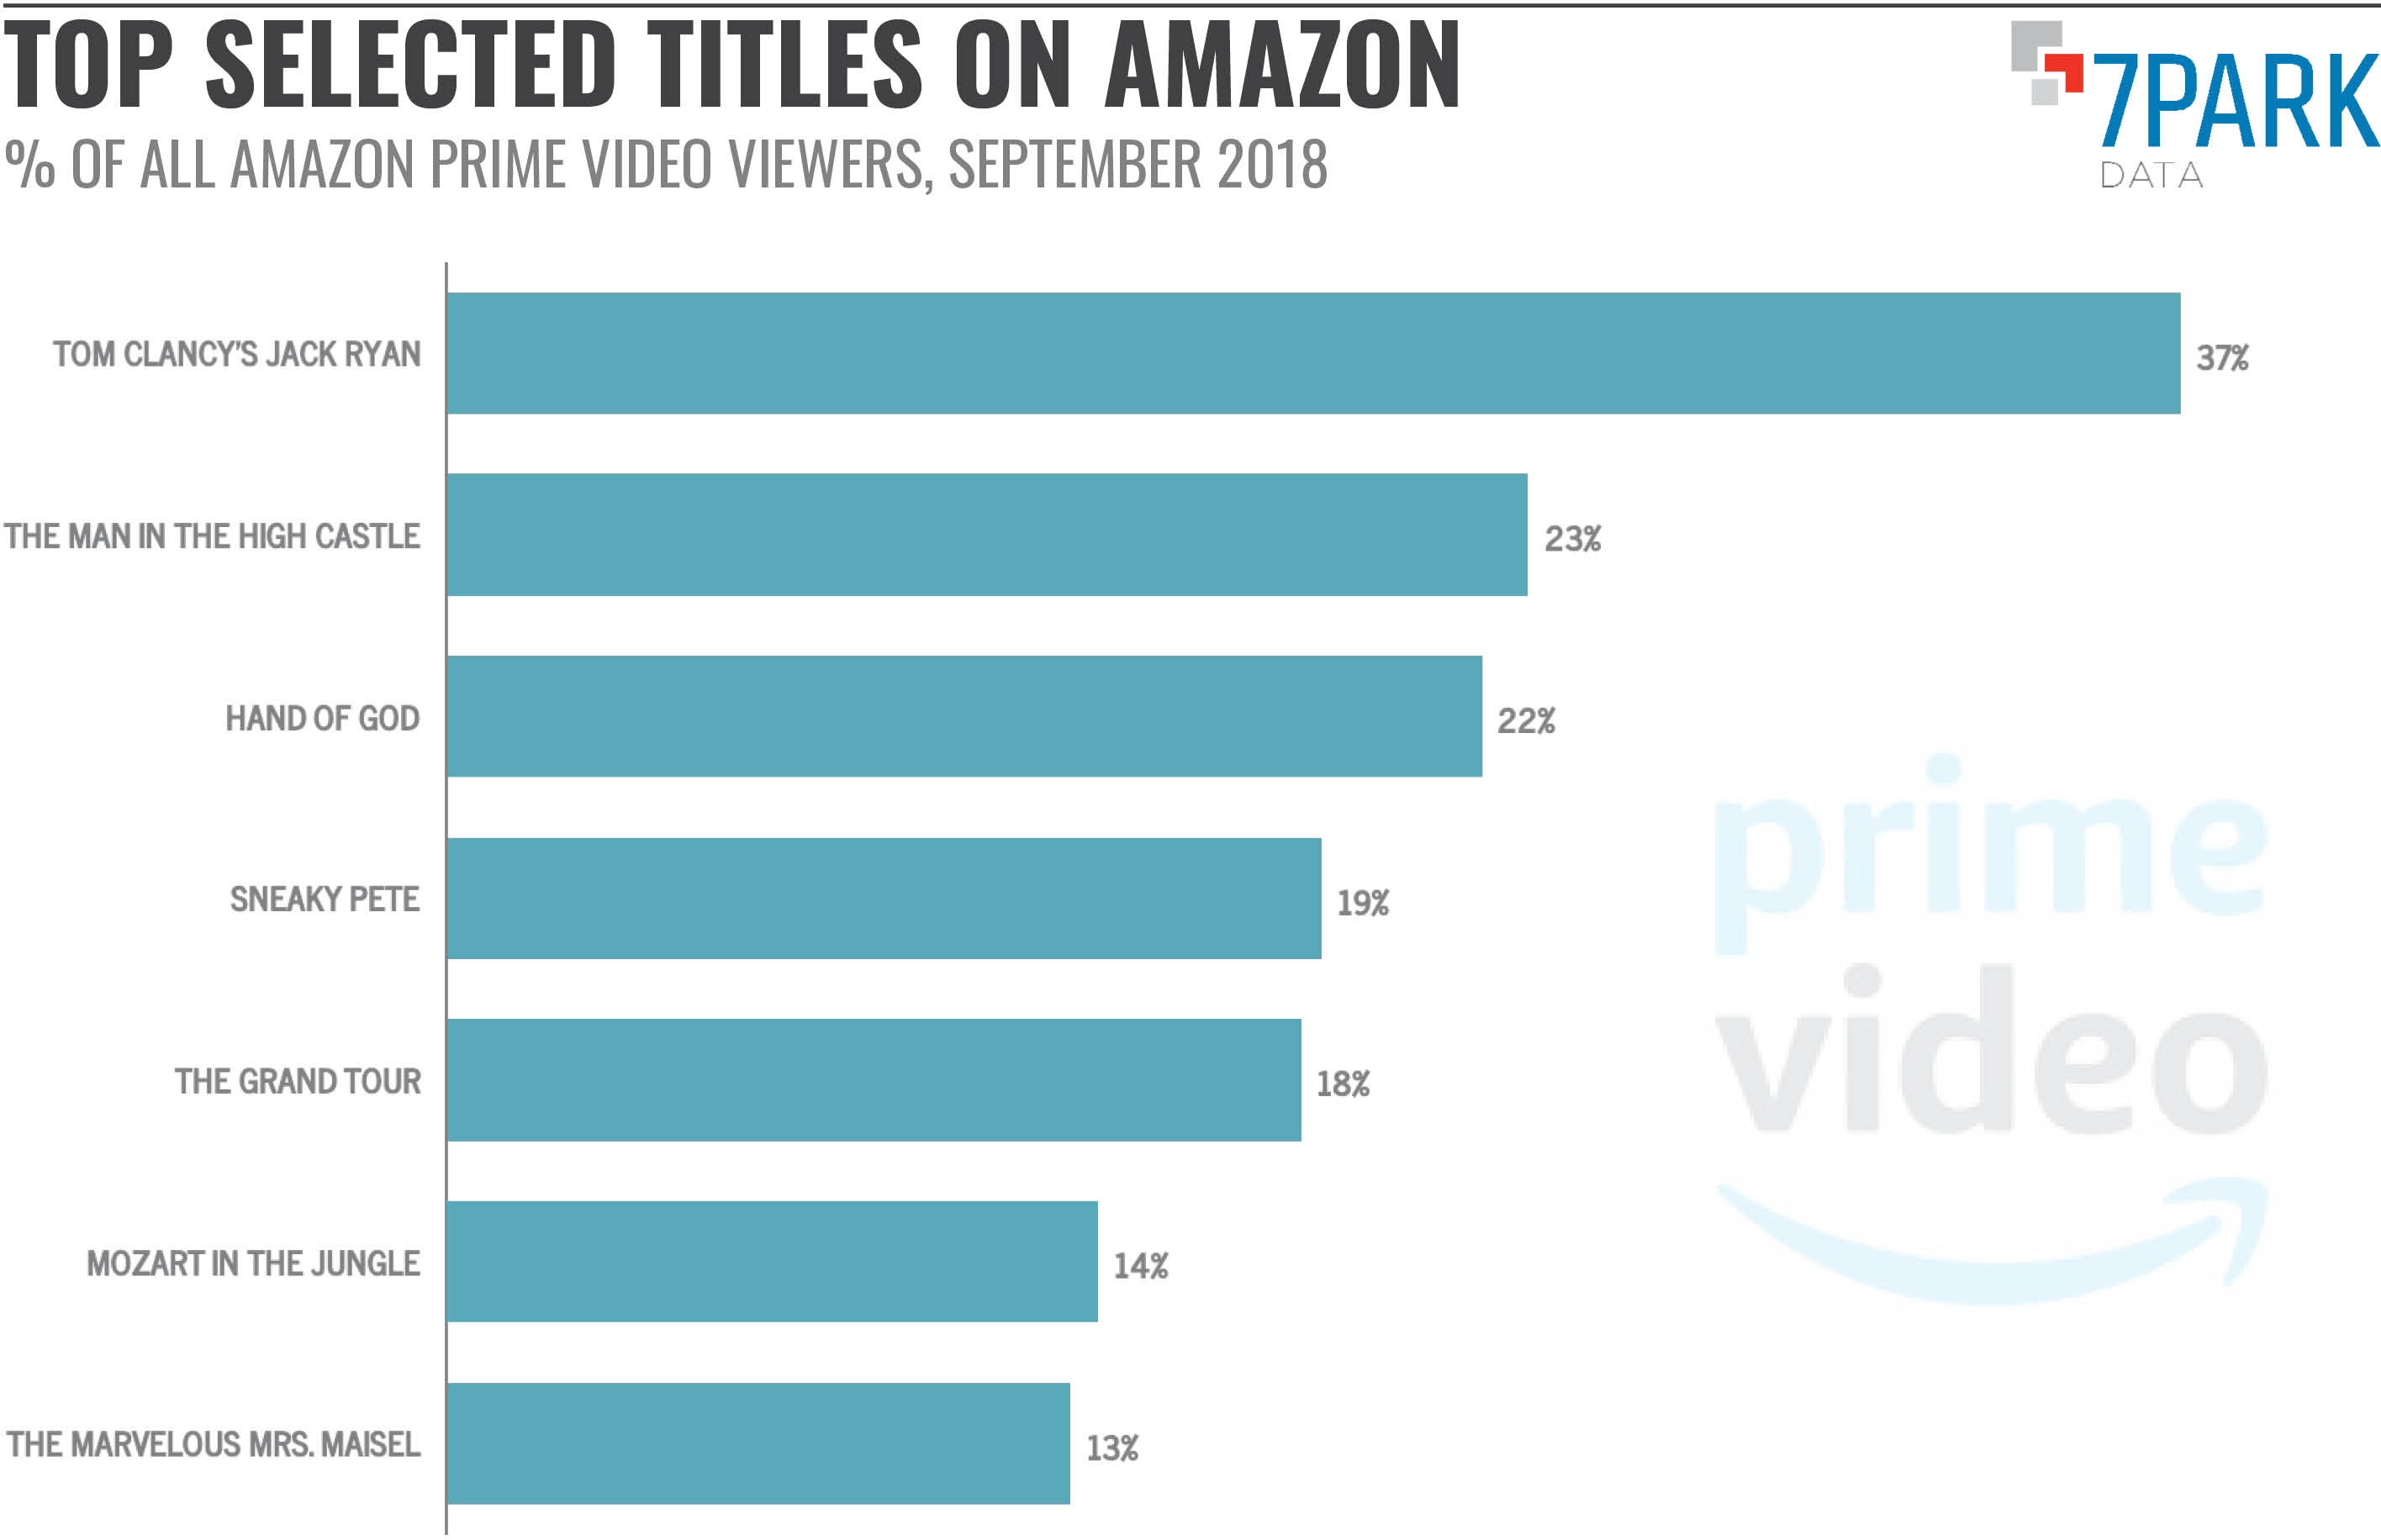 Top Titles on Amazon Prime Video September 2018